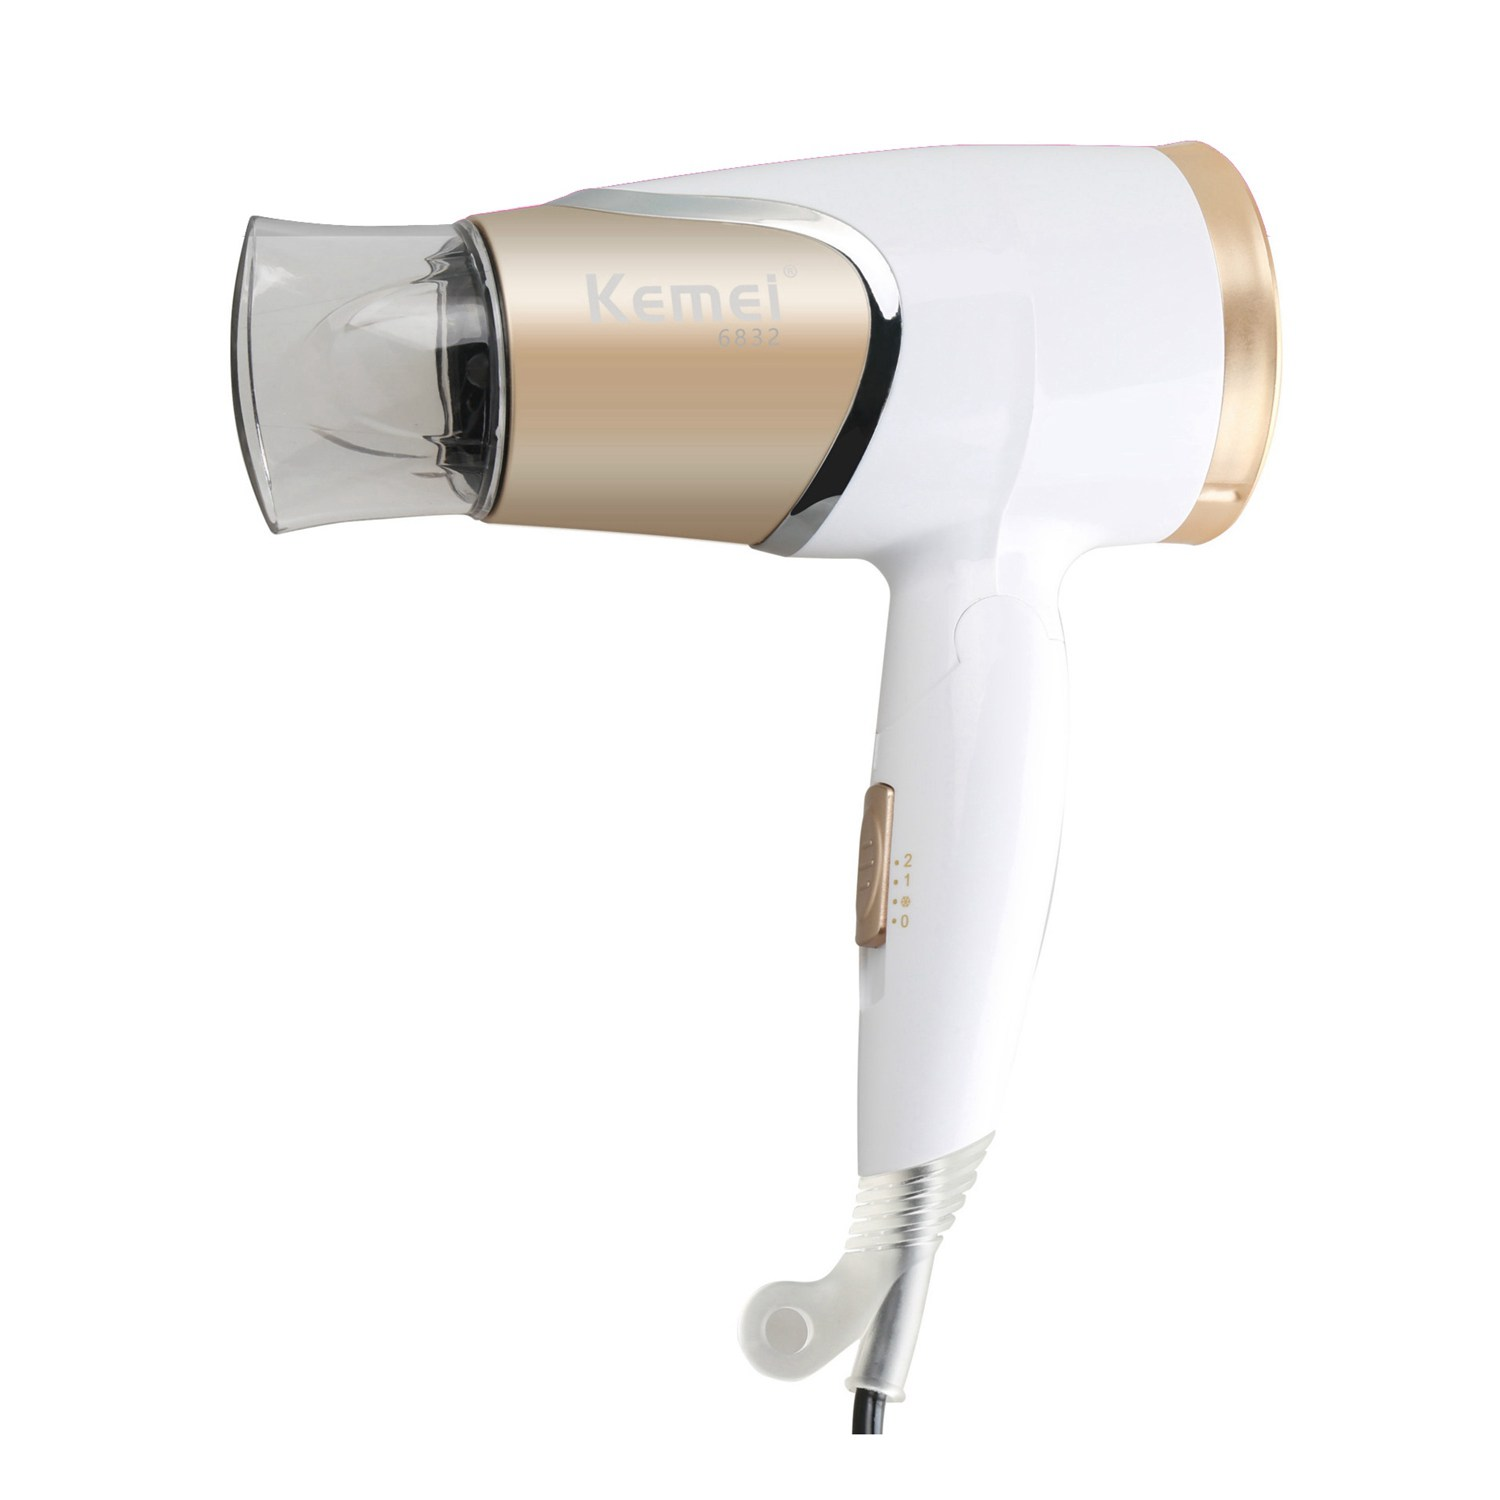 Kemei KM-6832 High Quality EU Plug 220 Voltage 1800W Mini Portable Hair Dryer for Home TravelKemei KM-6832 High Quality EU Plug 220 Voltage 1800W Mini Portable Hair Dryer for Home Travel